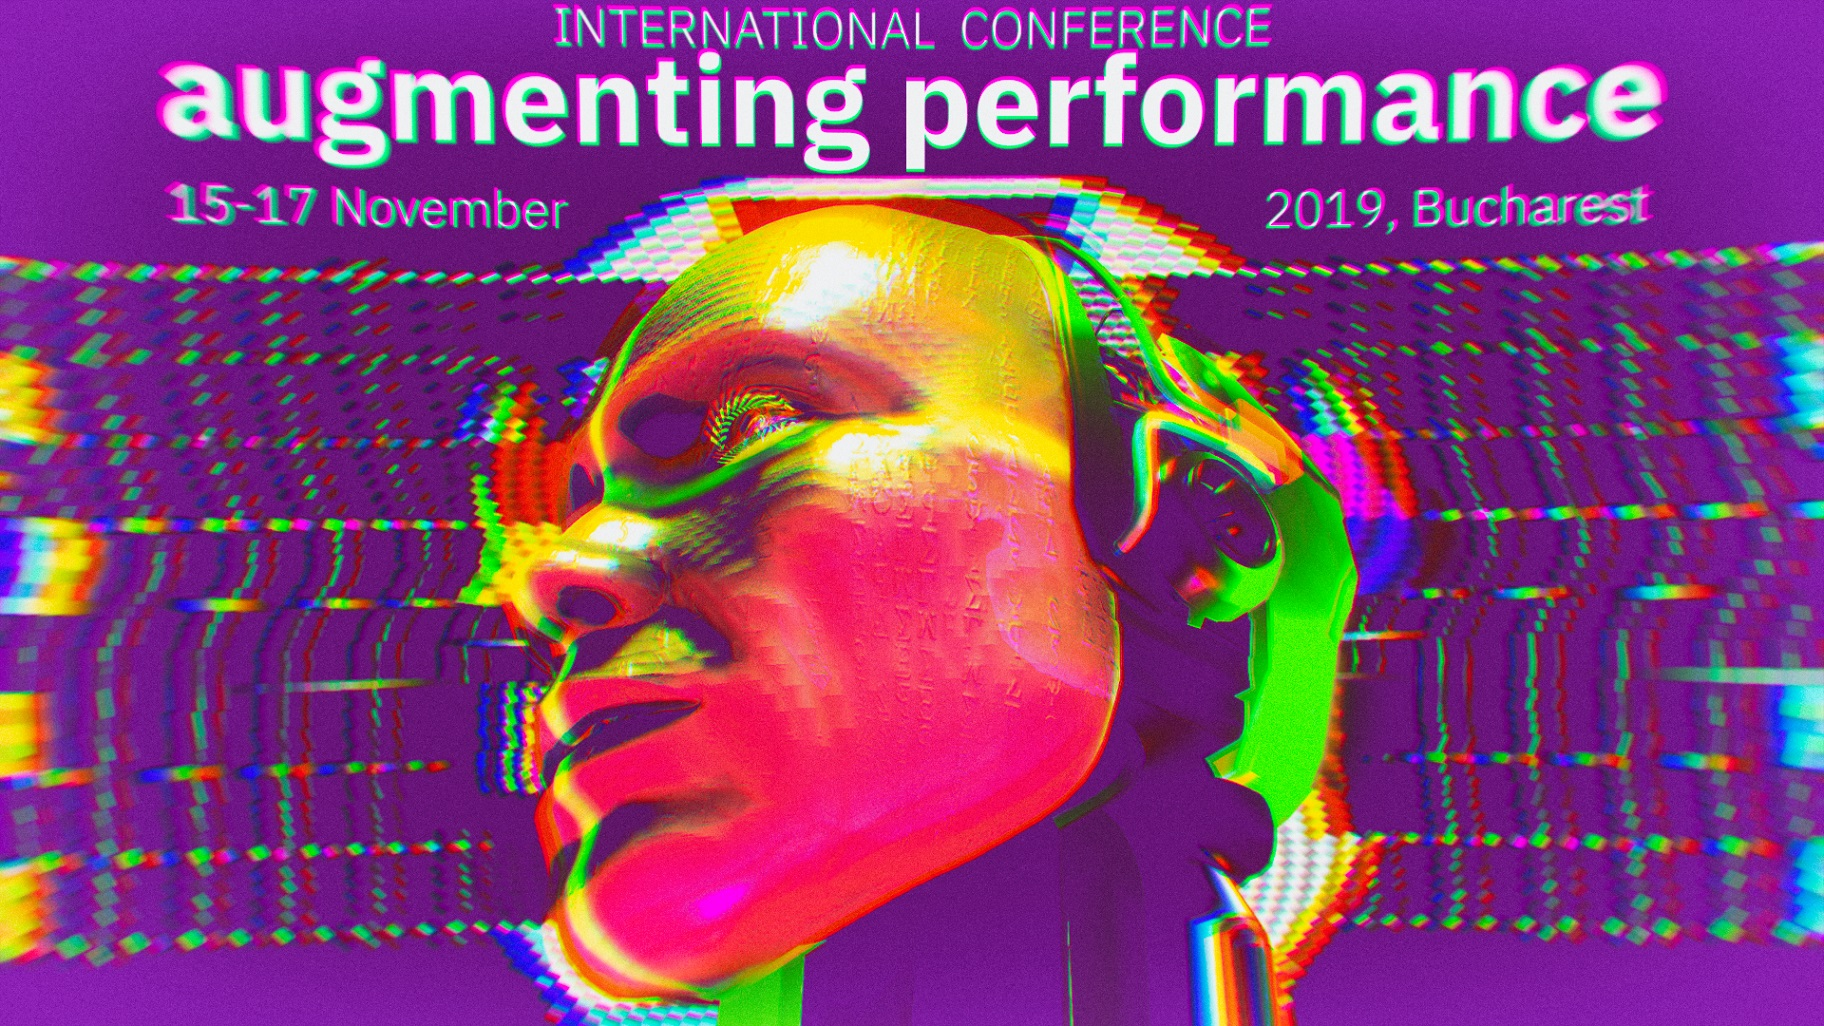 augmenting performance